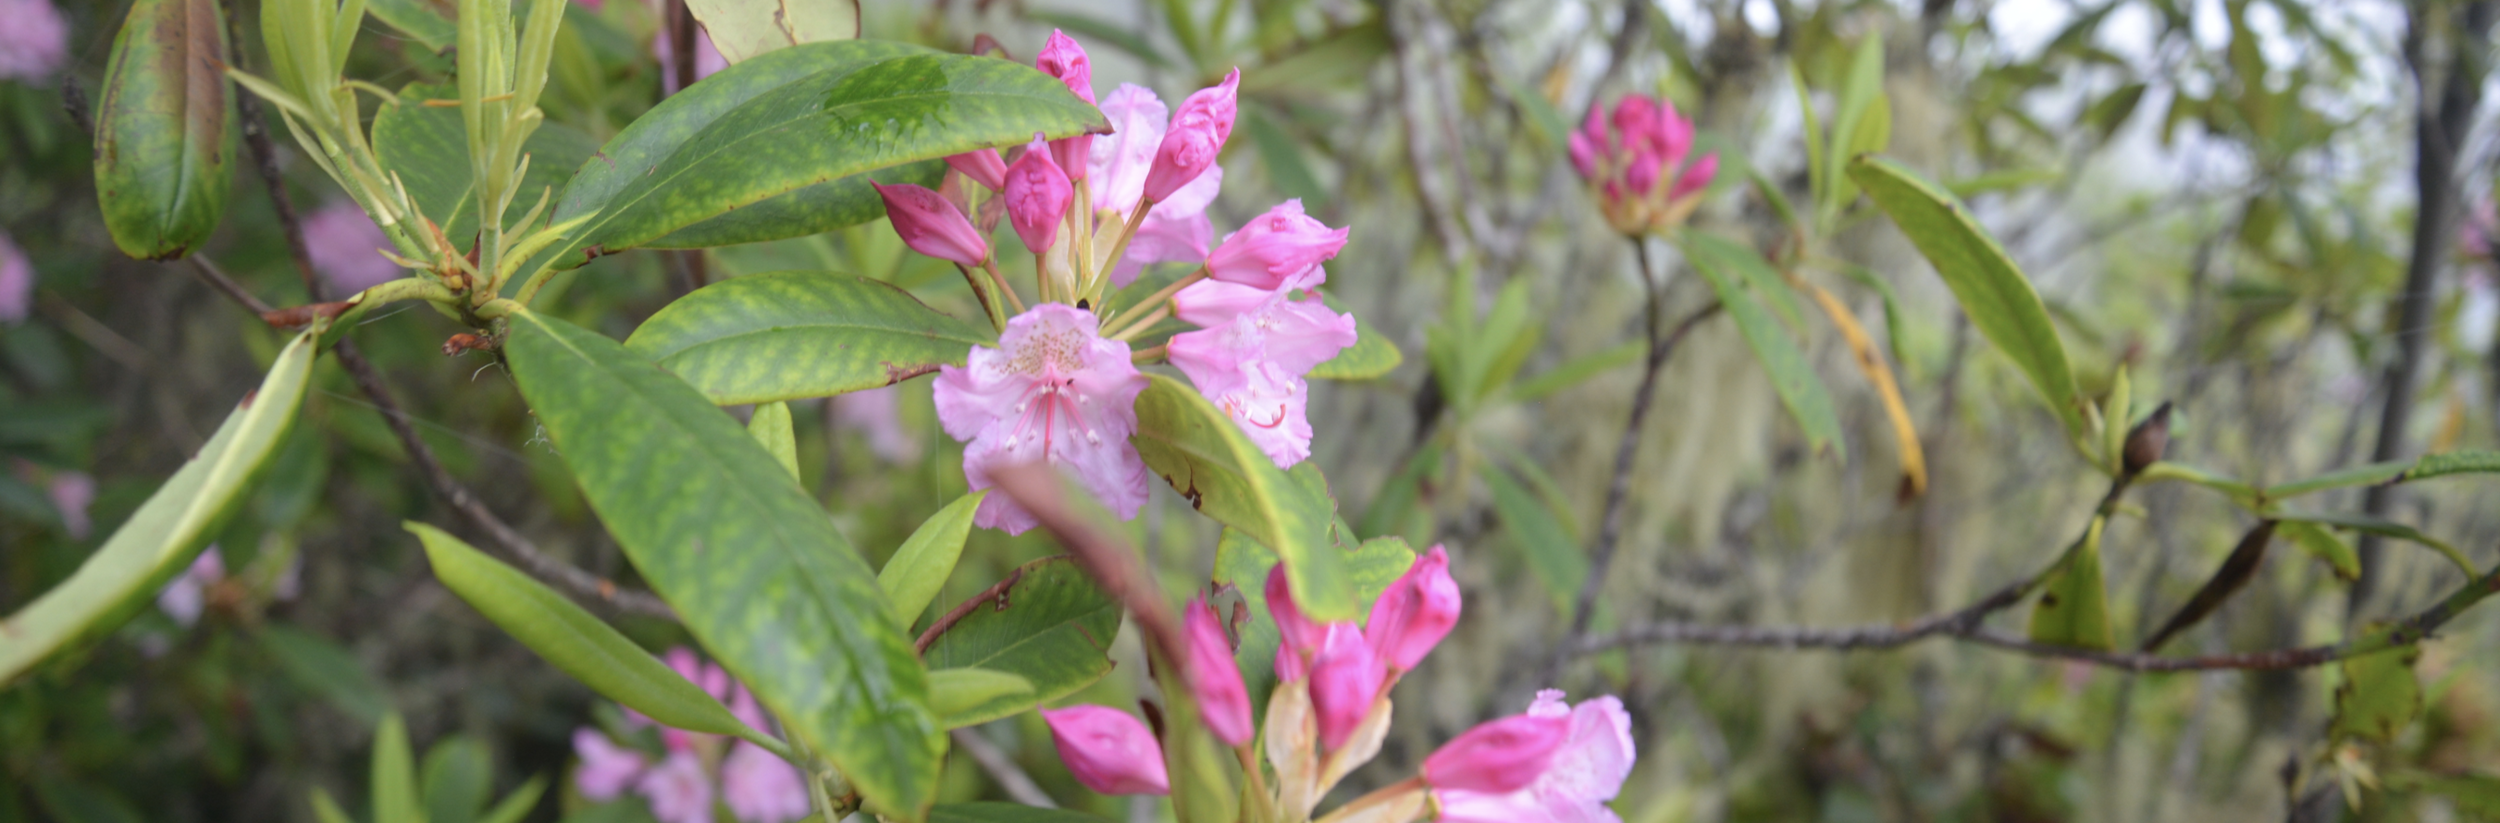 The  Pacific Rhododendron  is Washington's State flower and is found in drier parts of the Hood Canal in the understory of coniferous forests.